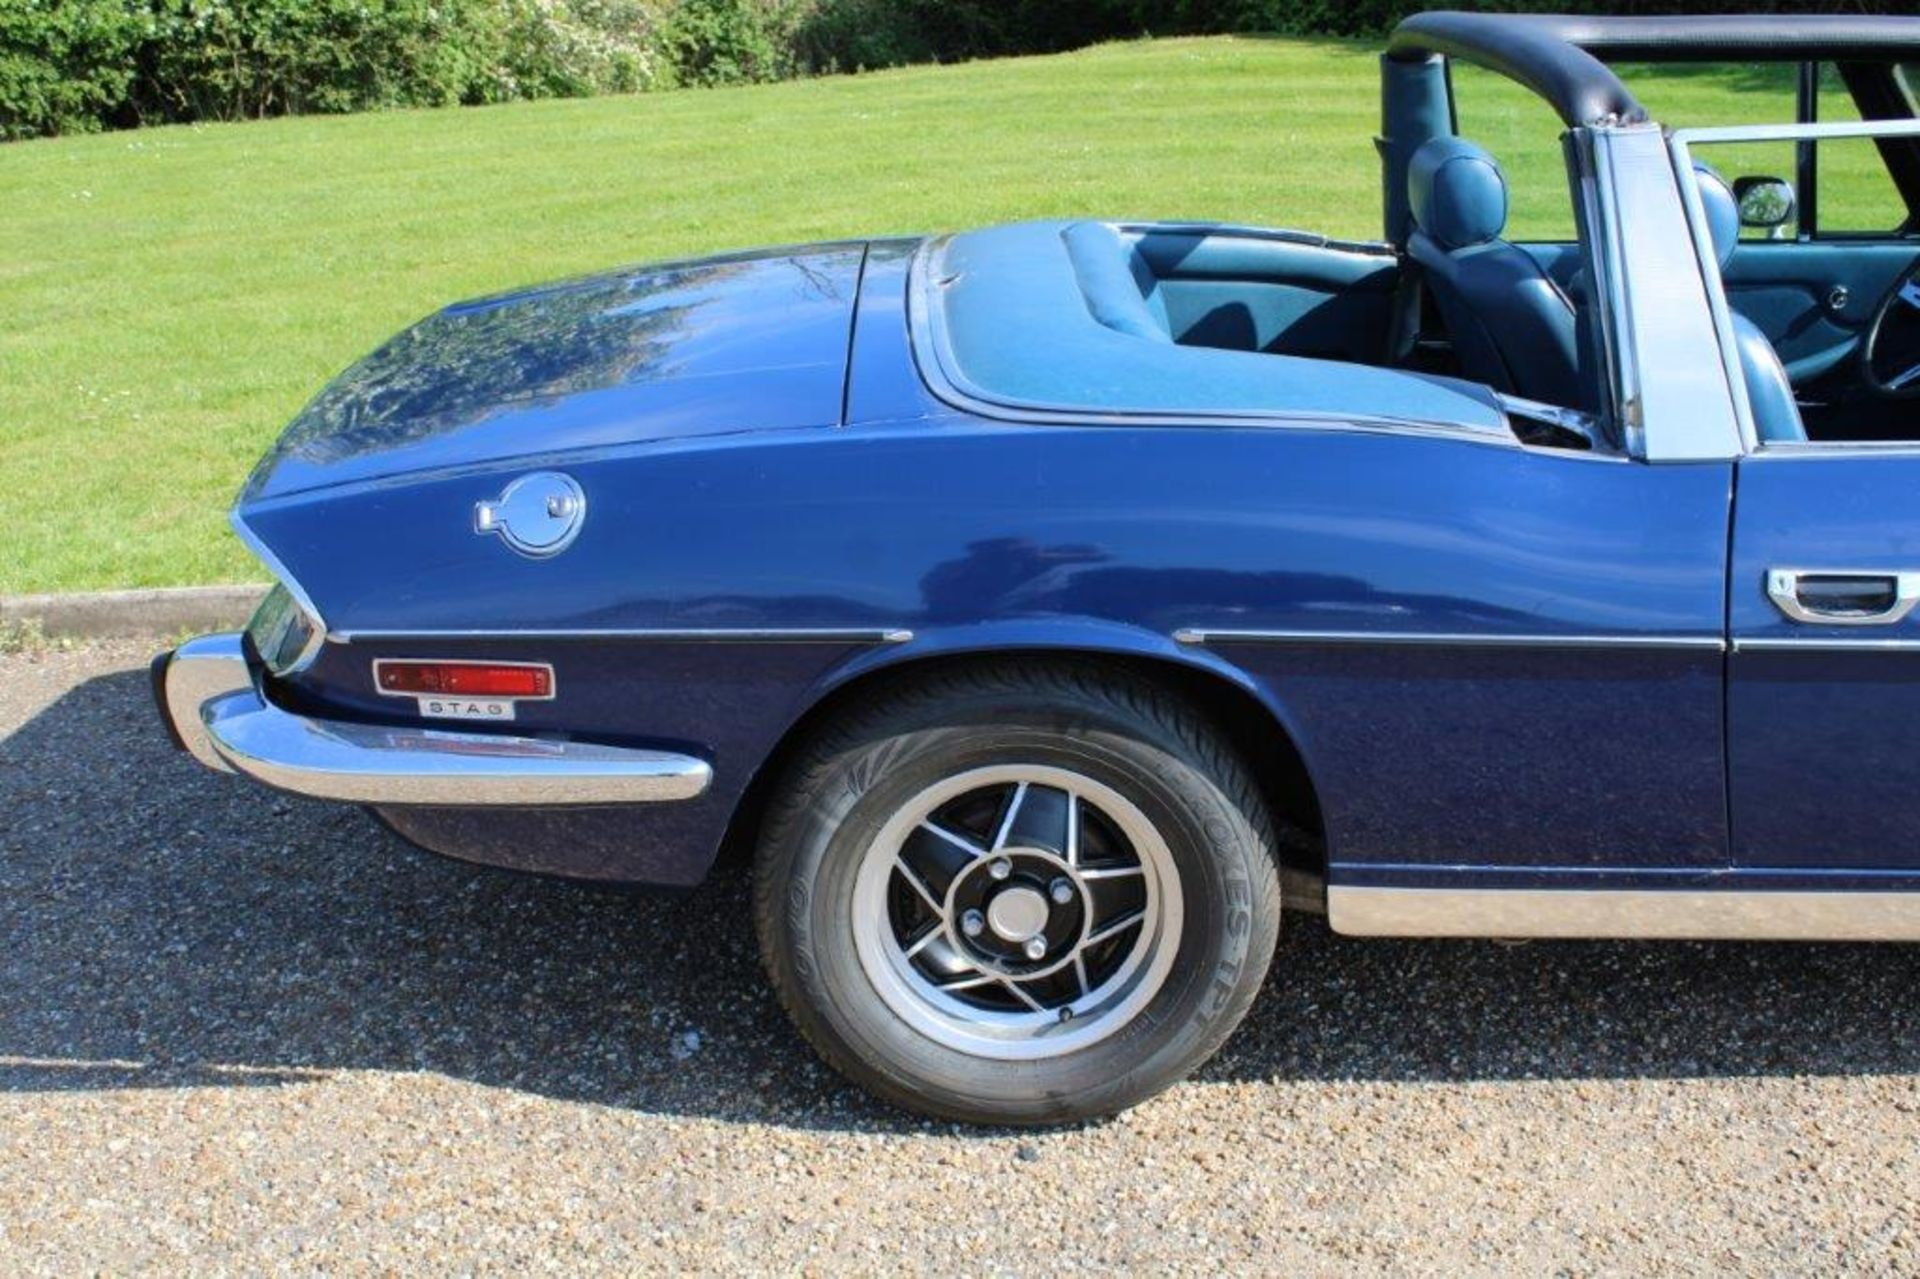 1973 Triumph Stag 3.0 LHD - Image 11 of 28